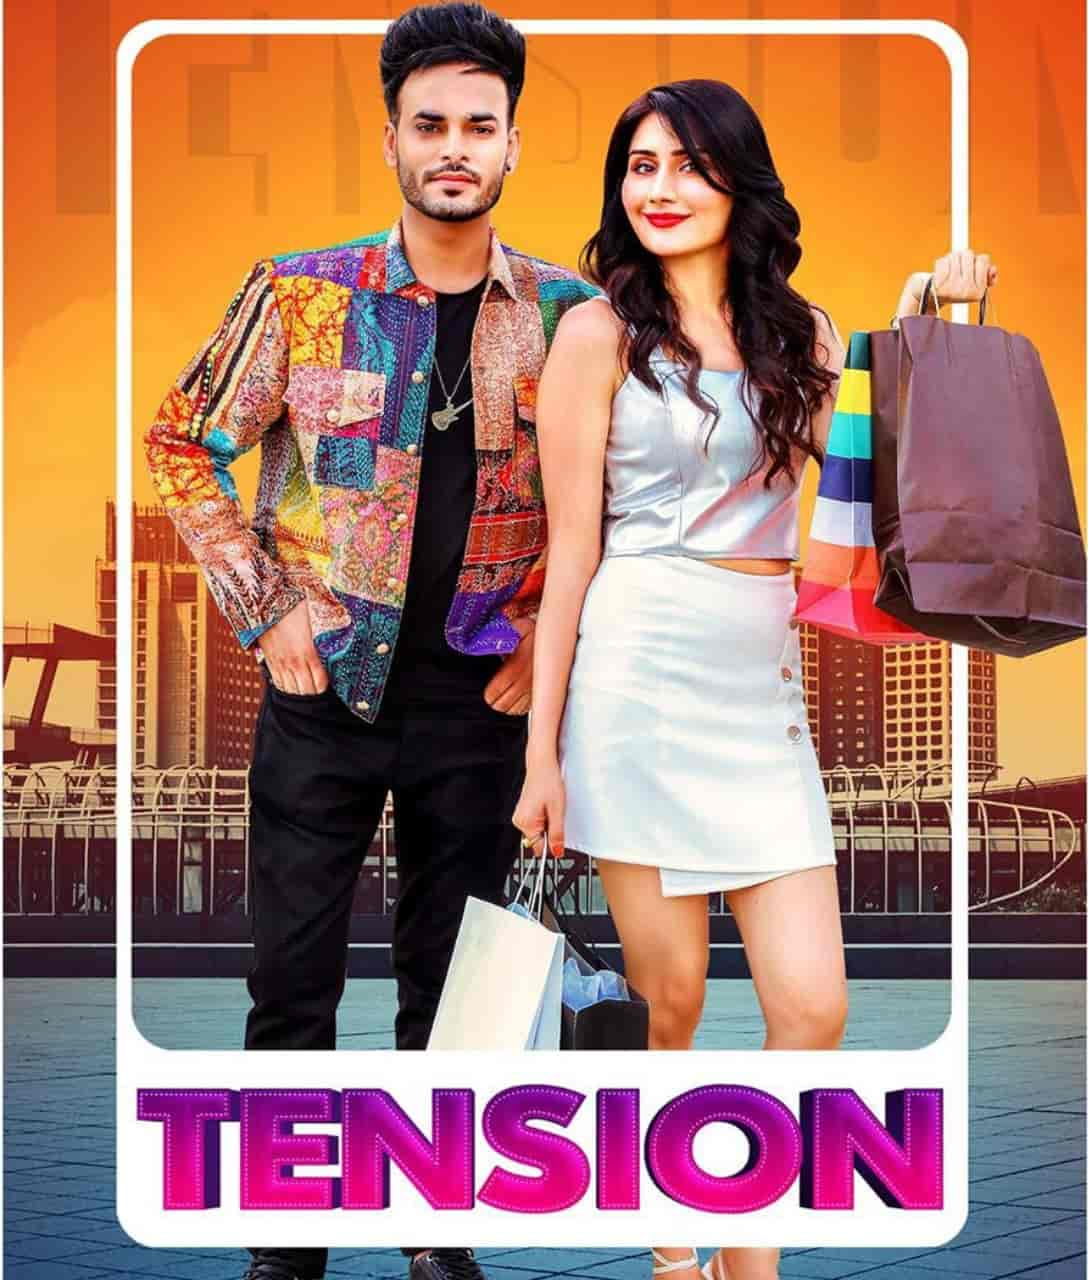 Tension Punjabi Song Image By Arsh Maini and Afsana Khan